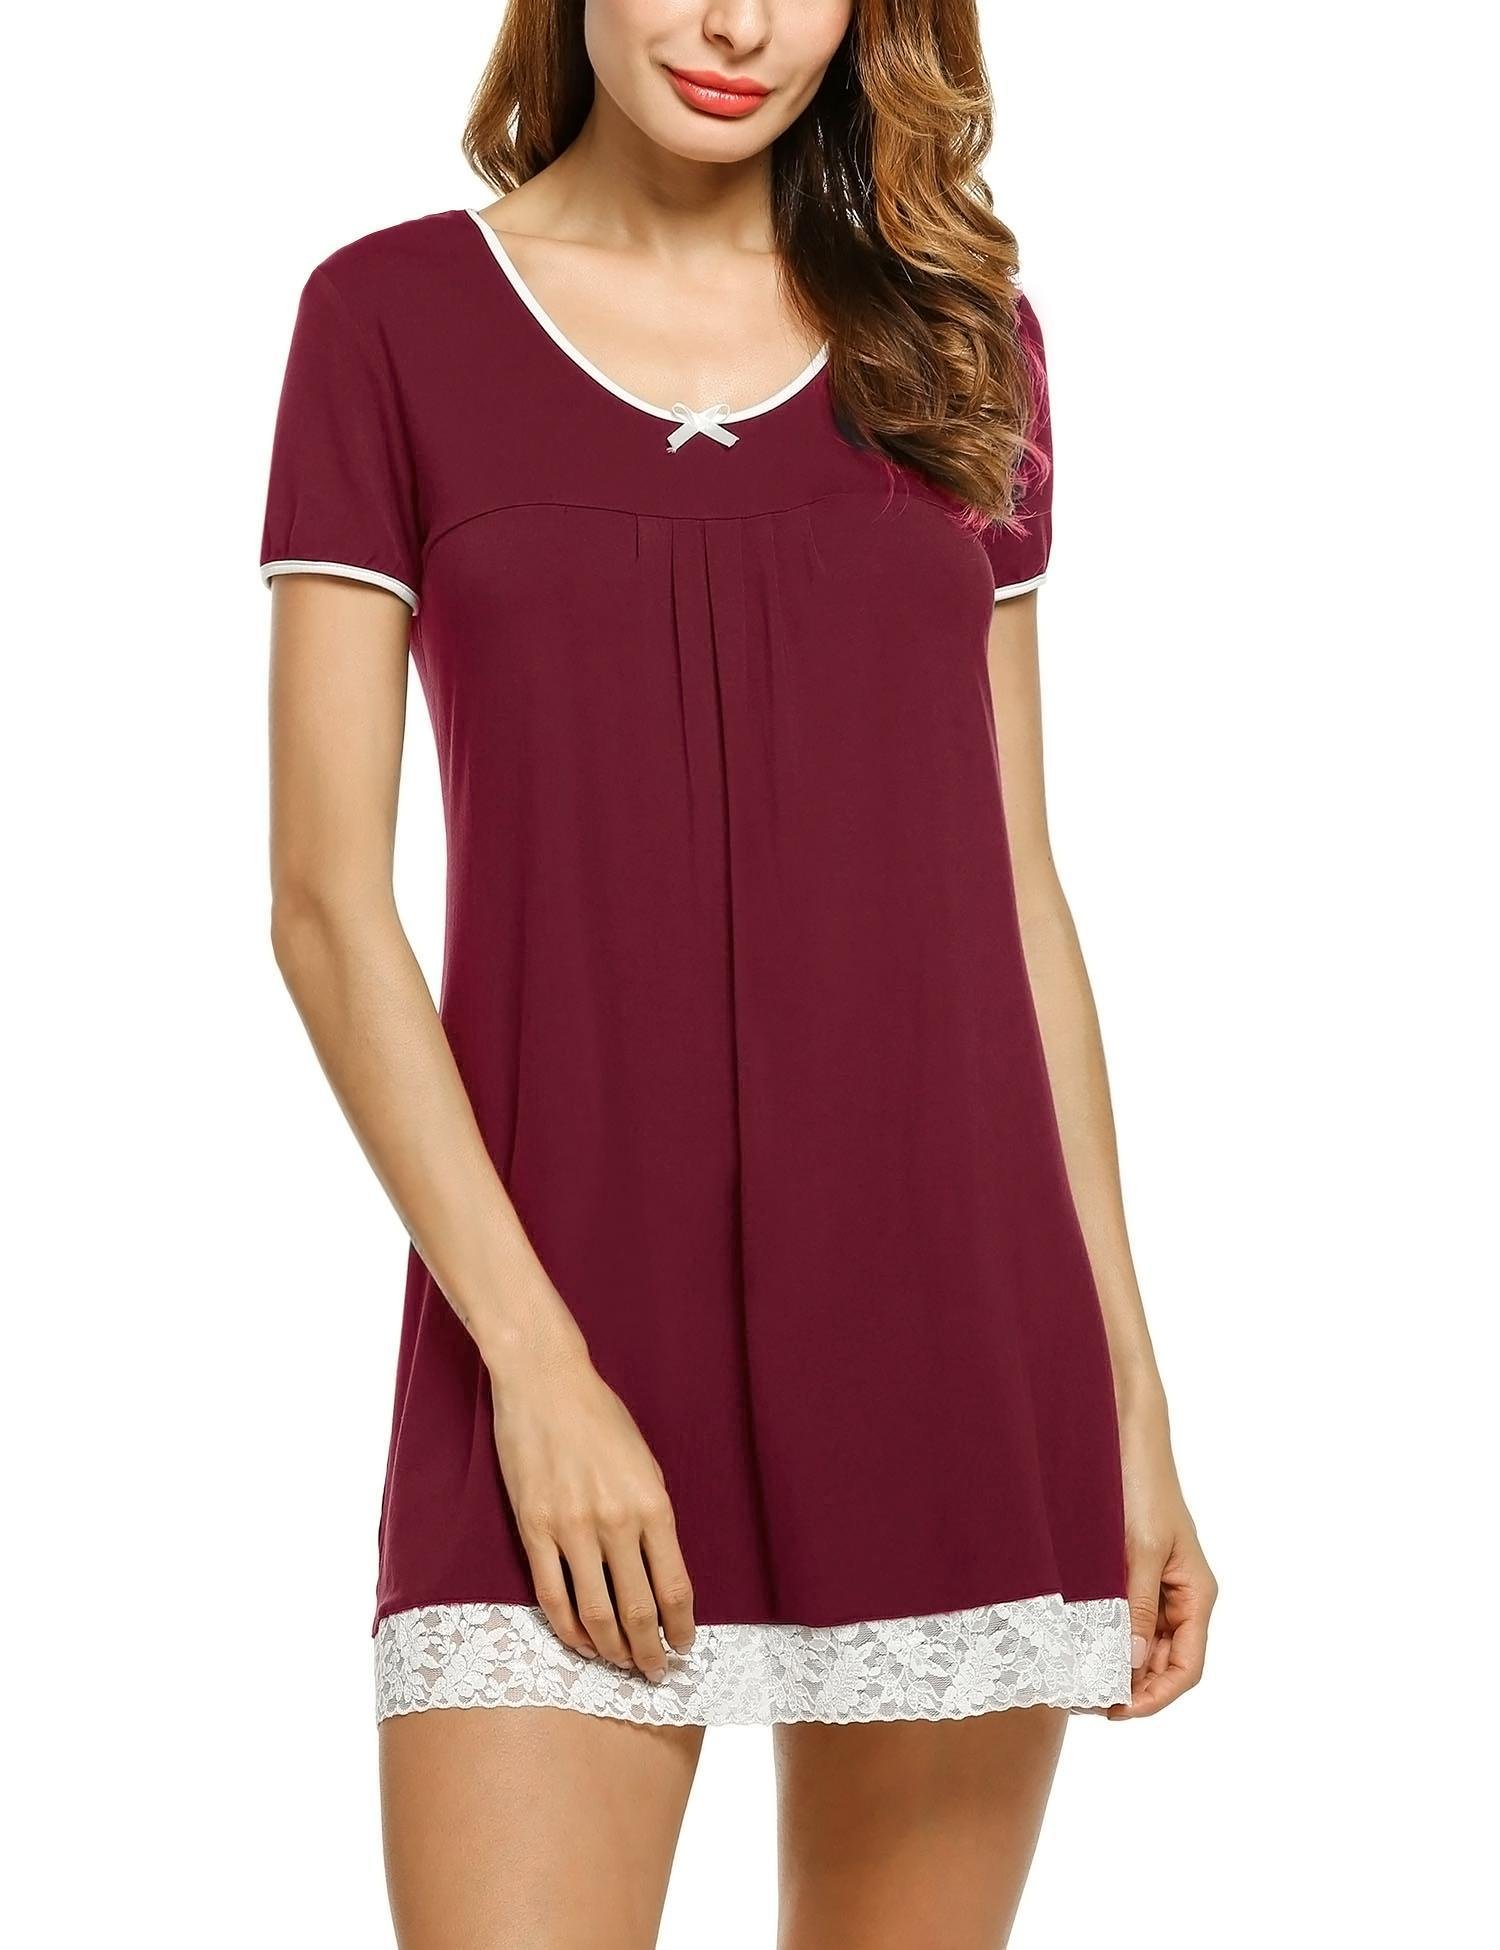 HOTOUCH Womens Cotton Nightshirts Light Weight Night Gown Nursing Shirts Wine Red M